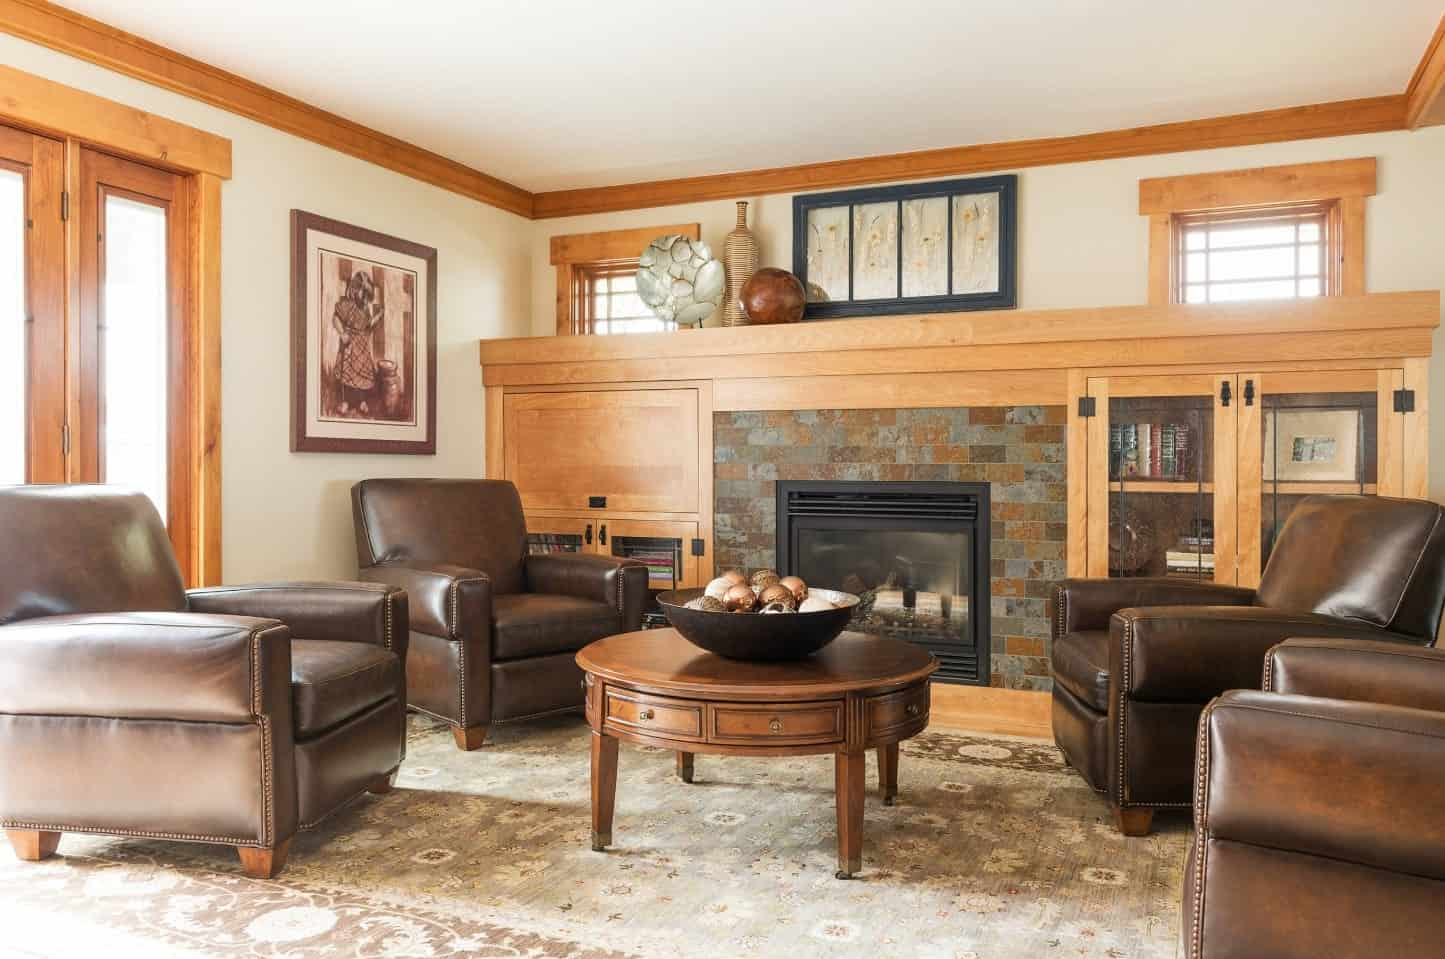 Brown Leather Chairs Surrounded The Wooden Center Table That Faces Fireplace In This Small Living